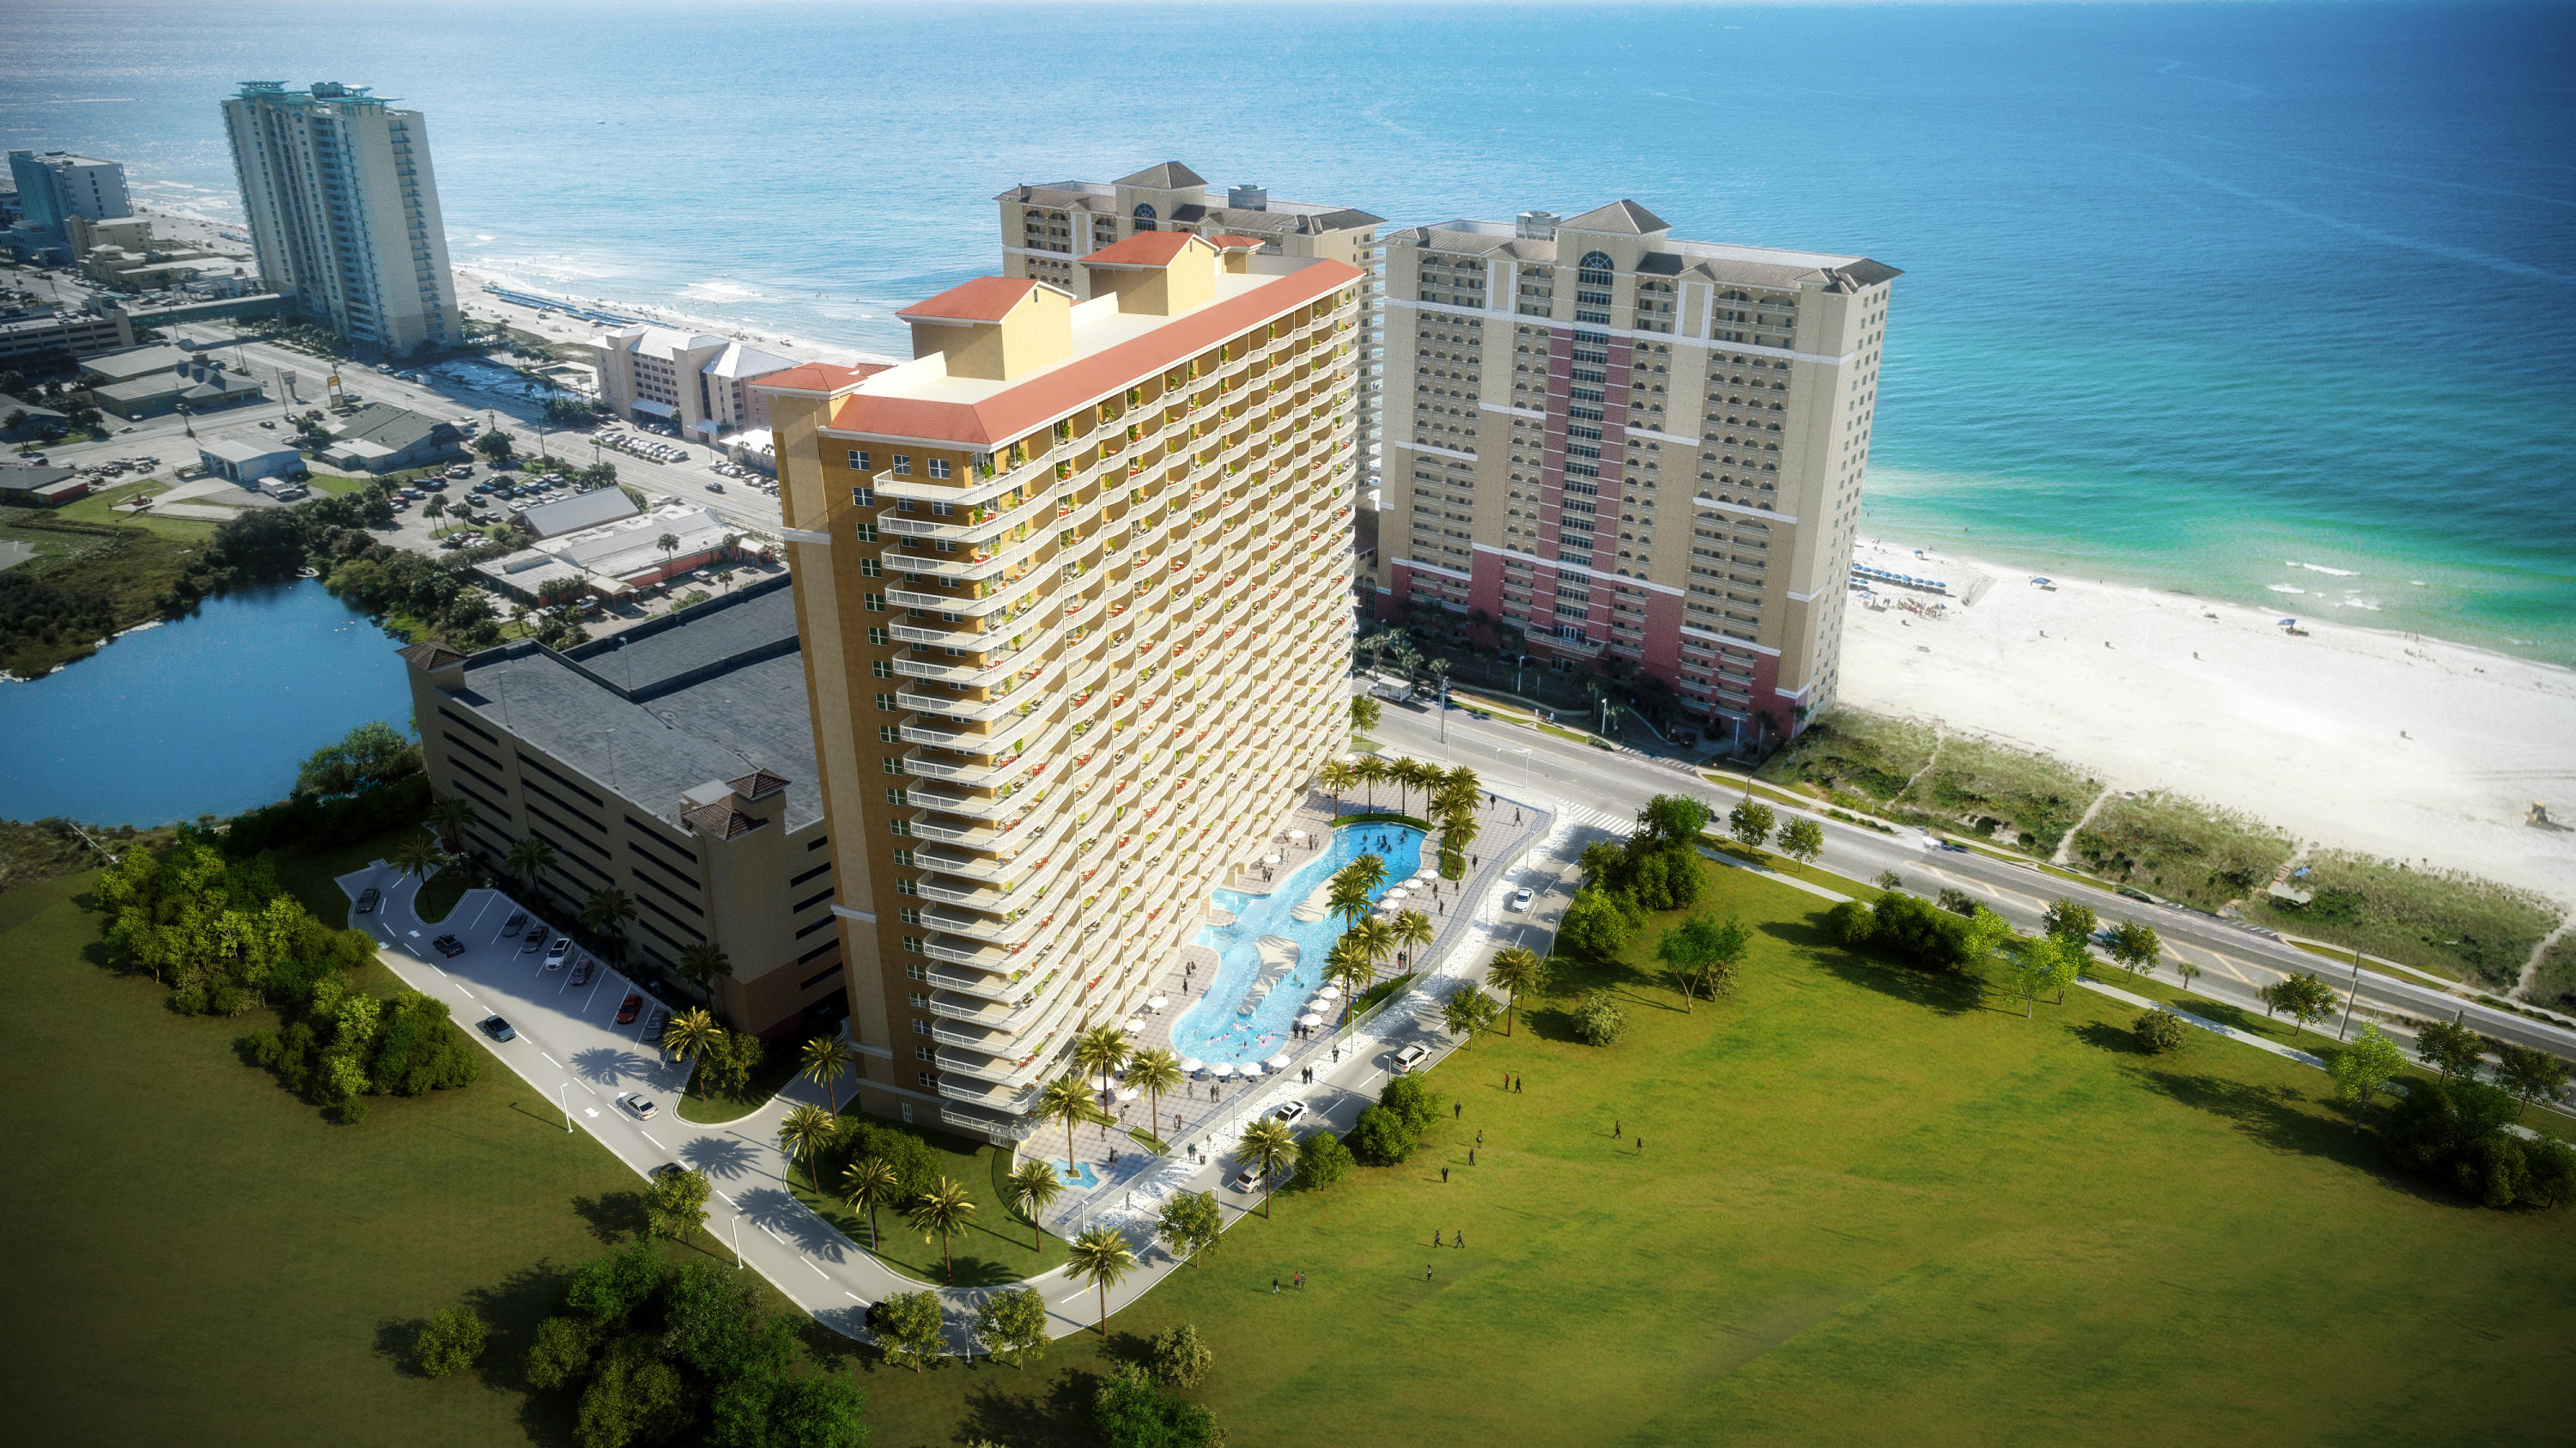 First pre-construction condos in Panama City Beach in 10 years! Adjacent to Pier Park and a quick walk to City Pier. Luxury interiors w/stainless steel appliances, quartz/granite counters, 9 ft. ceilings, 10 ft. wide balconies. Amenities include lagoon-style pool, large fitness center, snack bar and parking garage.